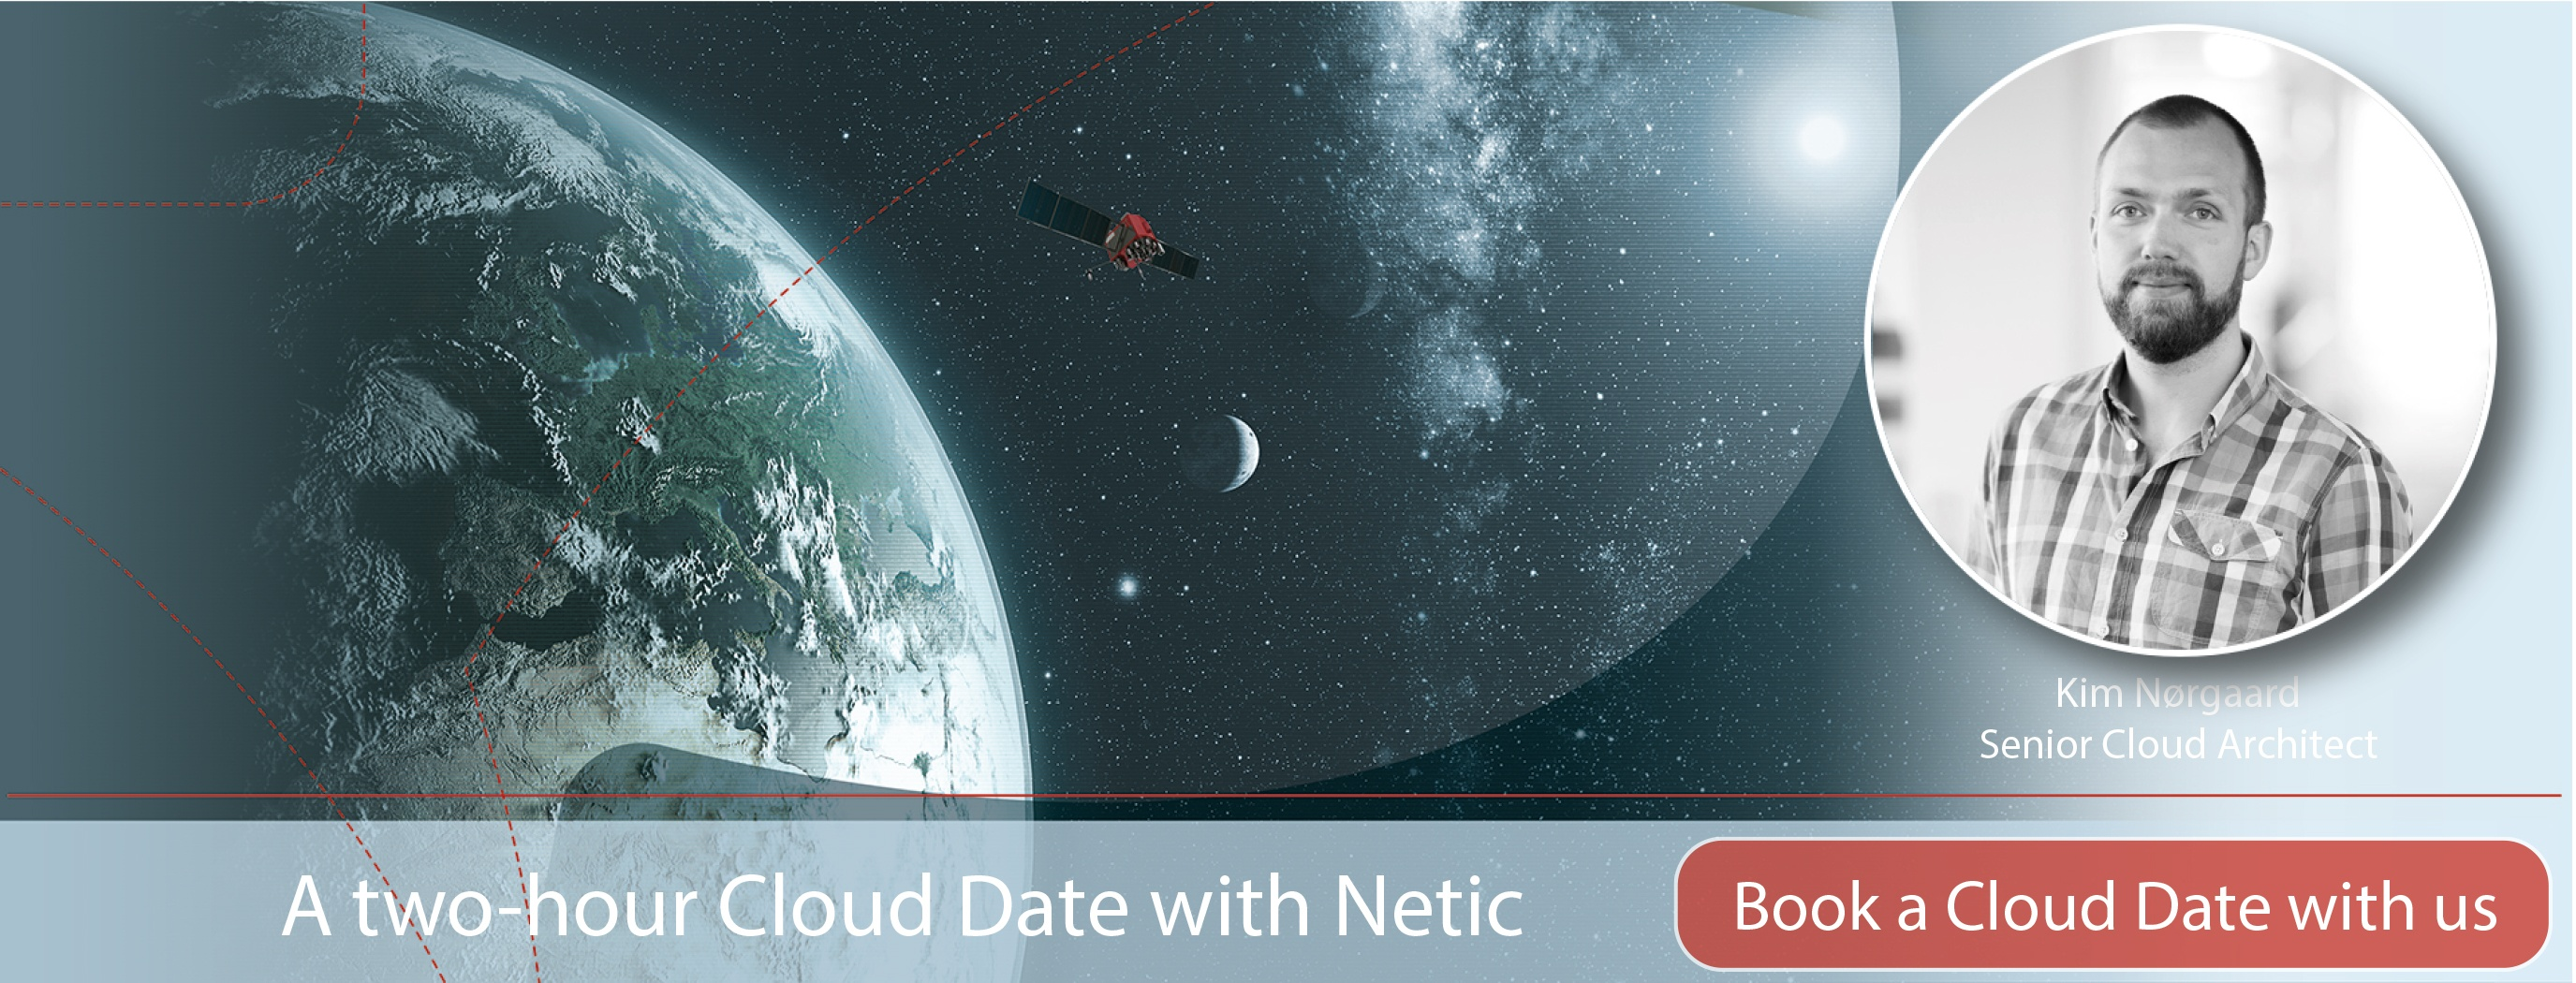 Cloud Date with Netic